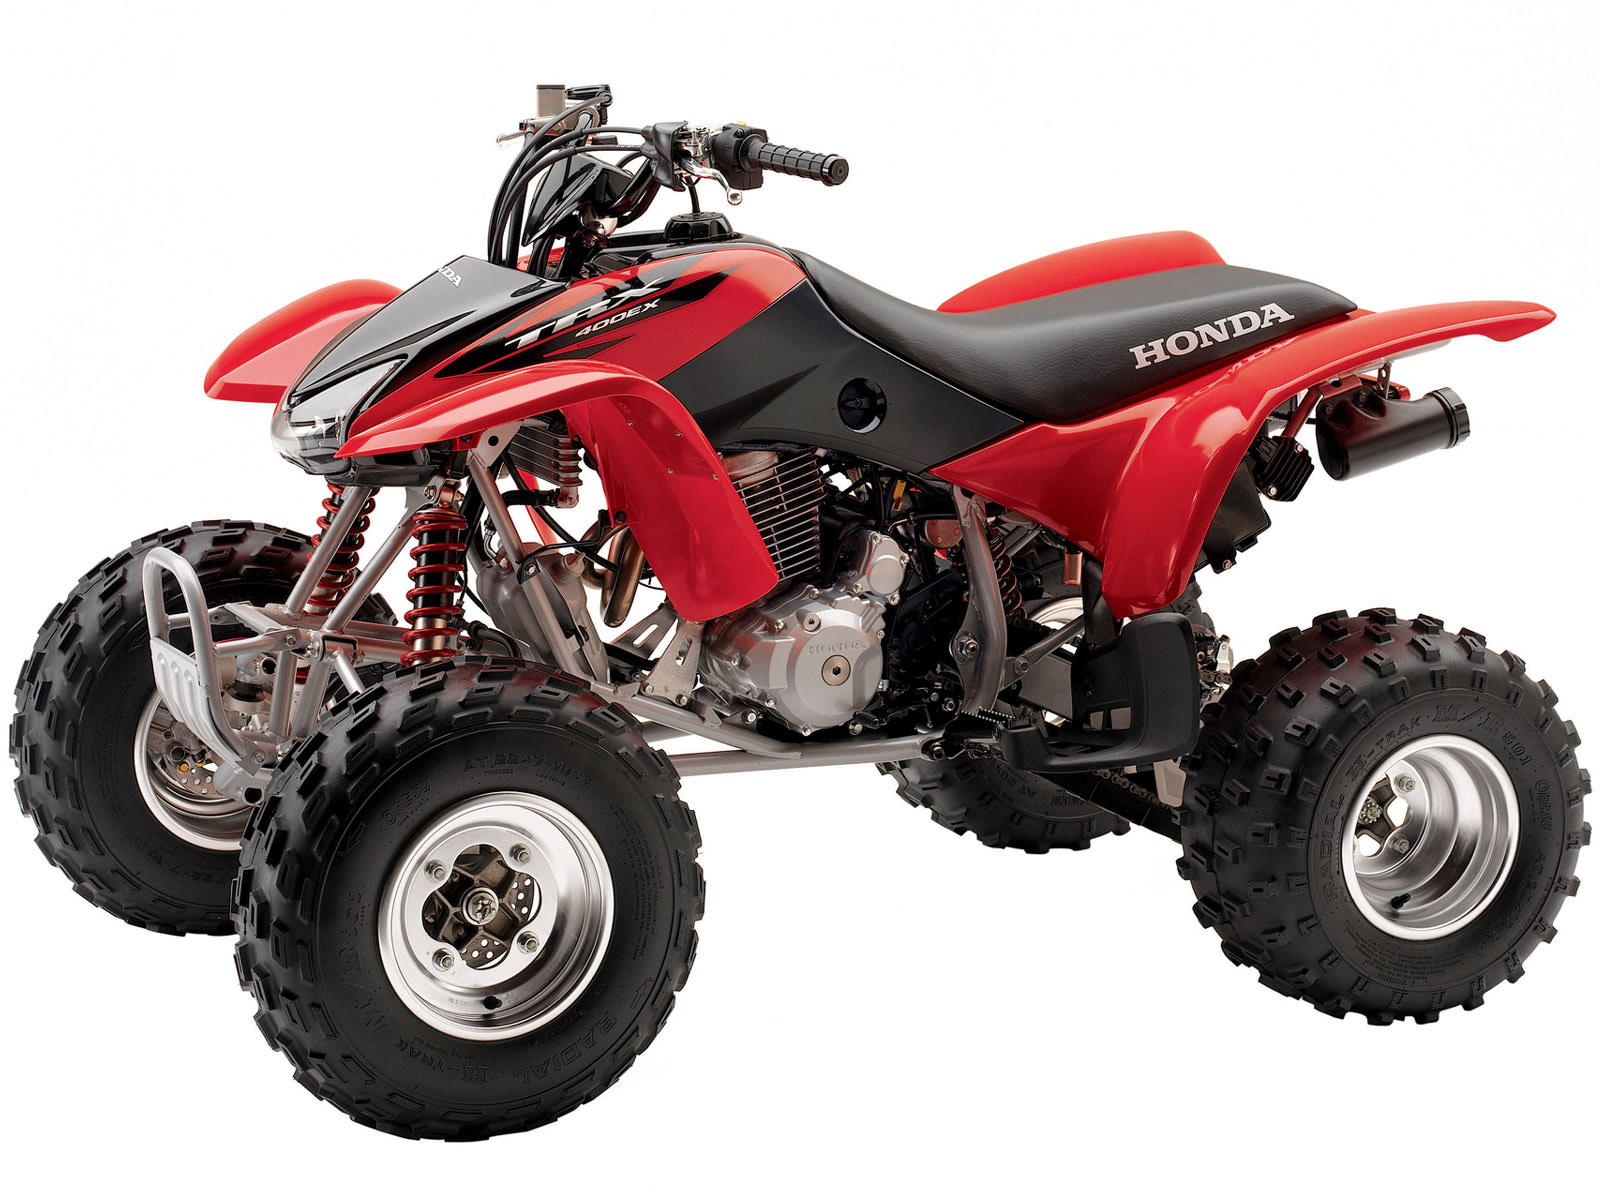 2006 honda atv trx400ex wallpapers. Black Bedroom Furniture Sets. Home Design Ideas